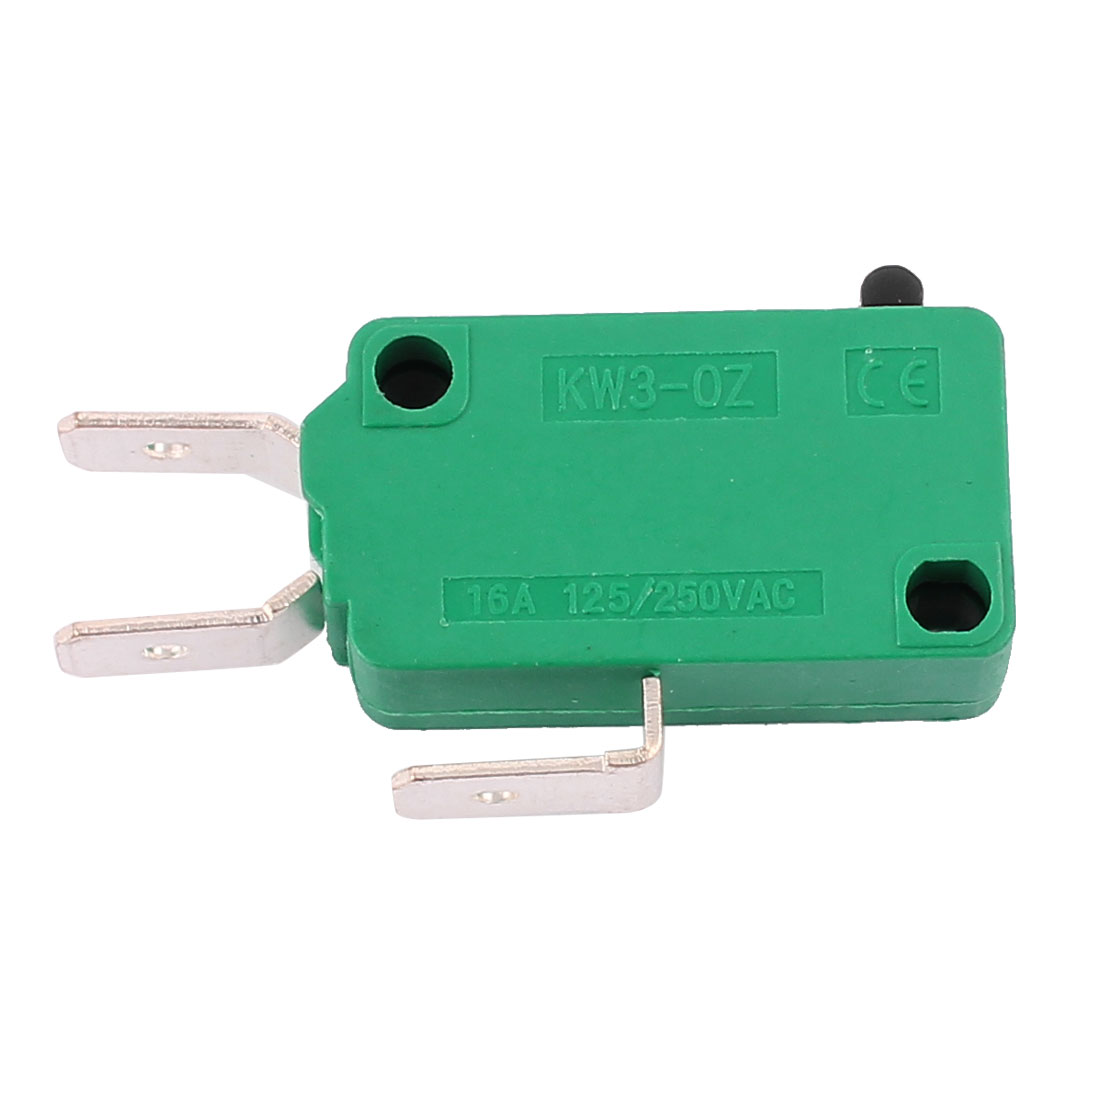 20pcs Short Hinge Roller Lever Spdt Momentary Micro Switch 16a 125 With 250v Ac